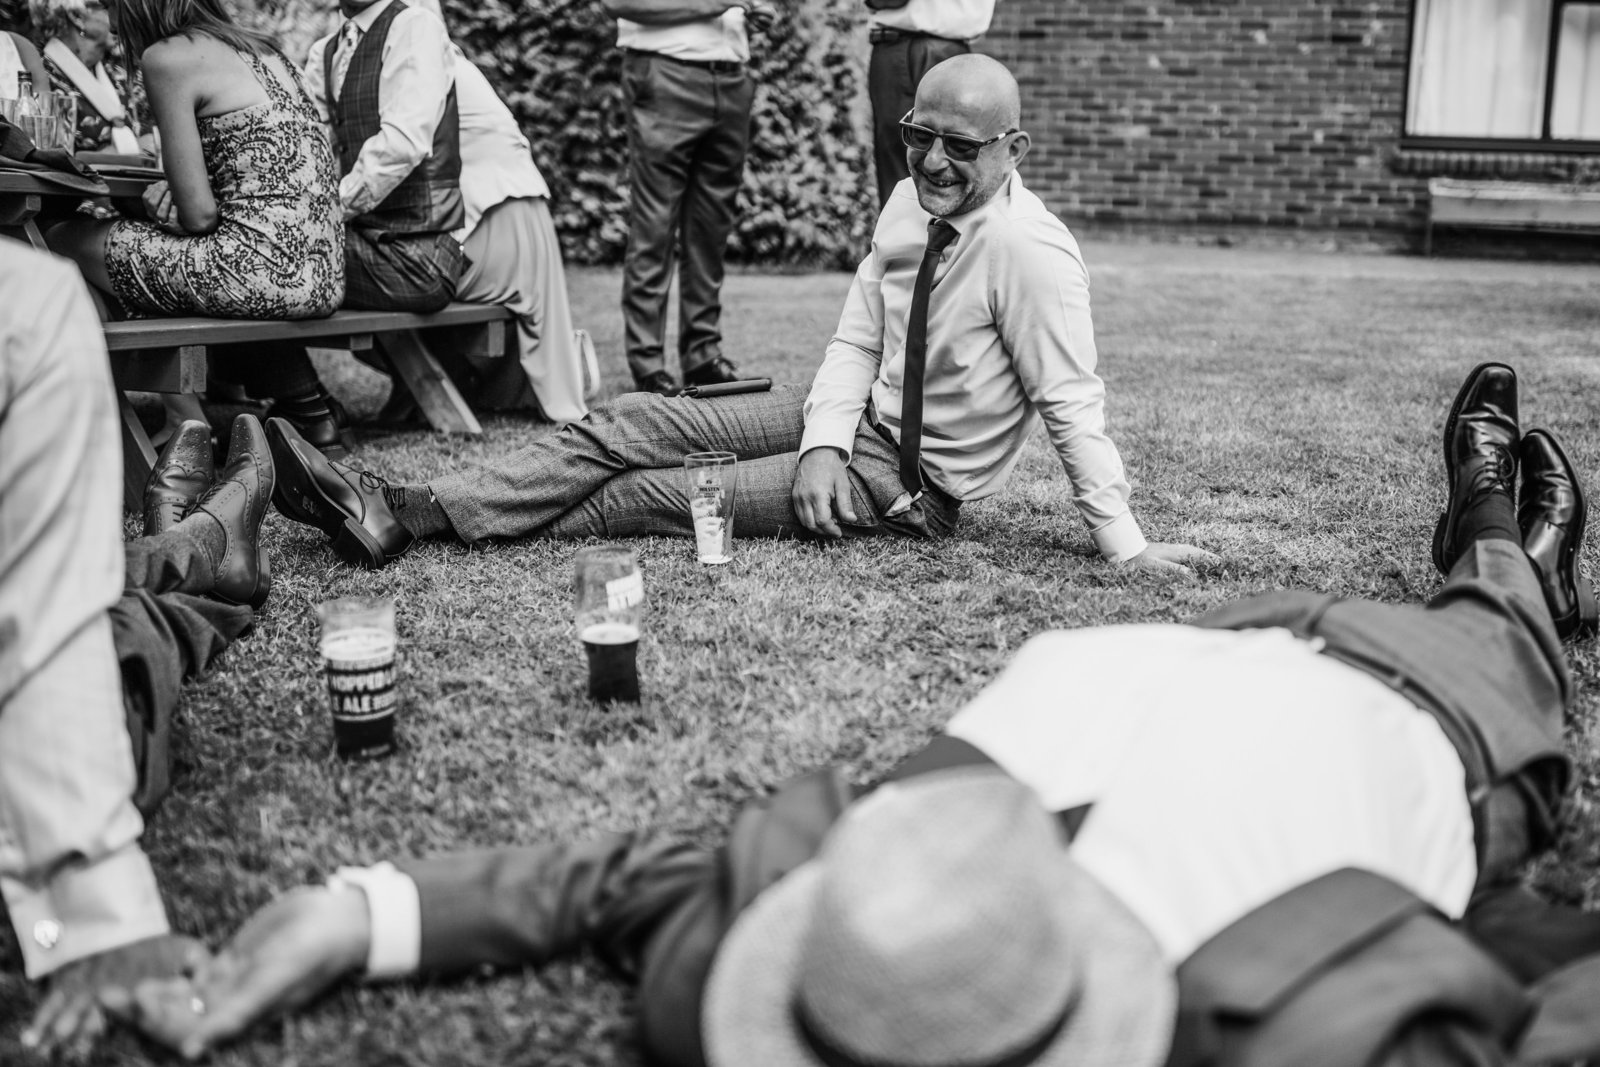 A wedding guest falls asleep on the floor of a Norfolk venue with a hat on his face. Another guest is looking and smiling.